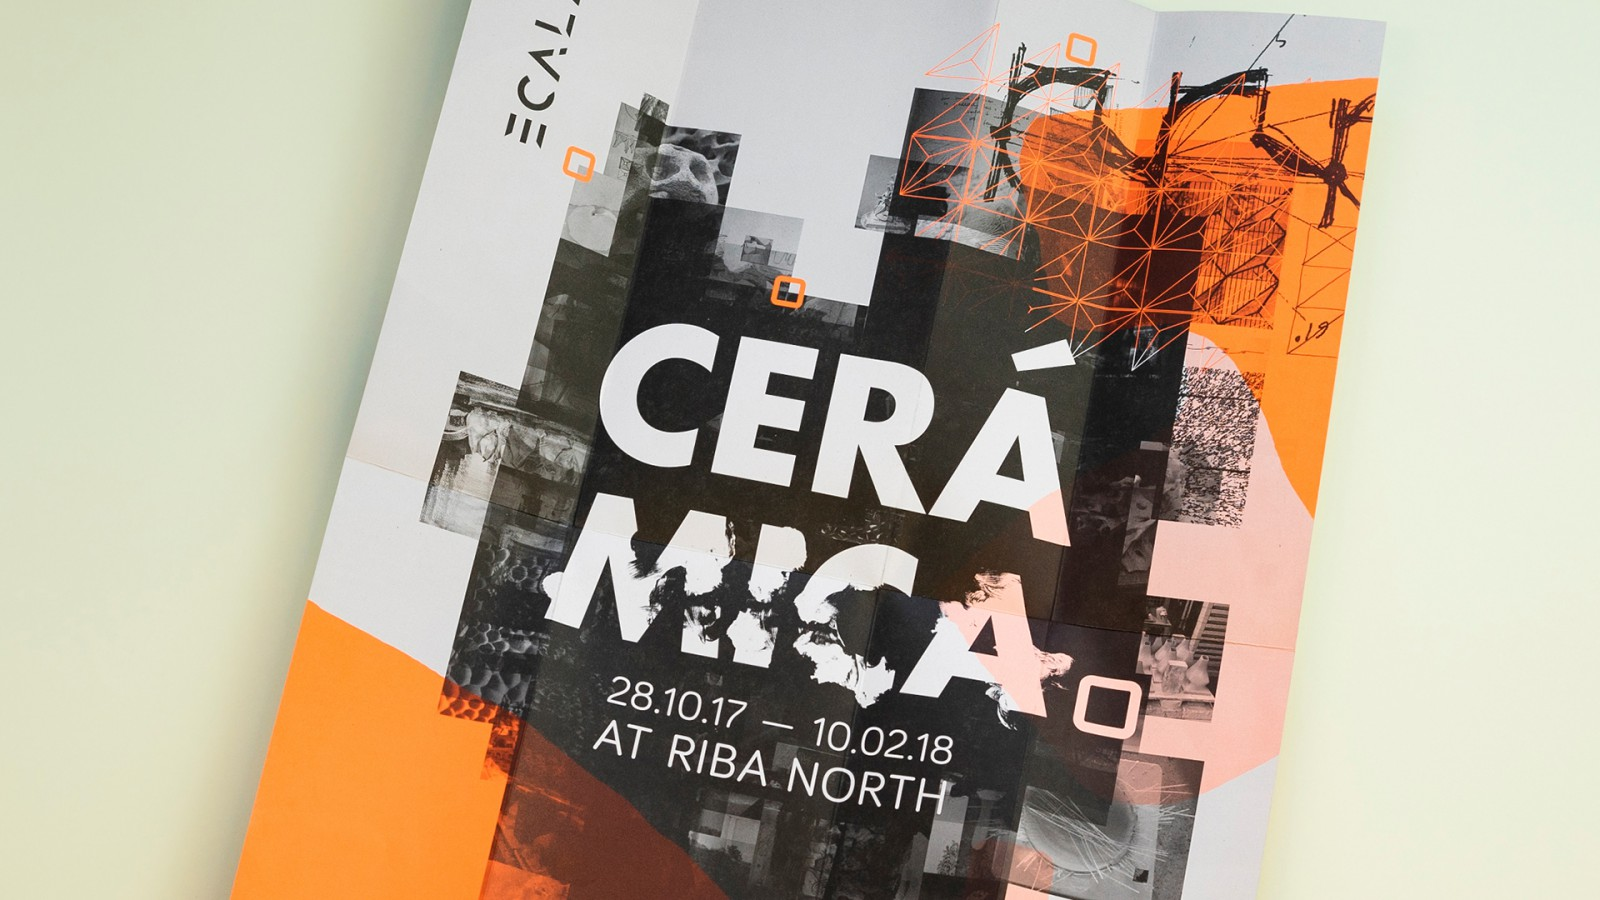 Gallery image for Cerámica @ RIBA North project